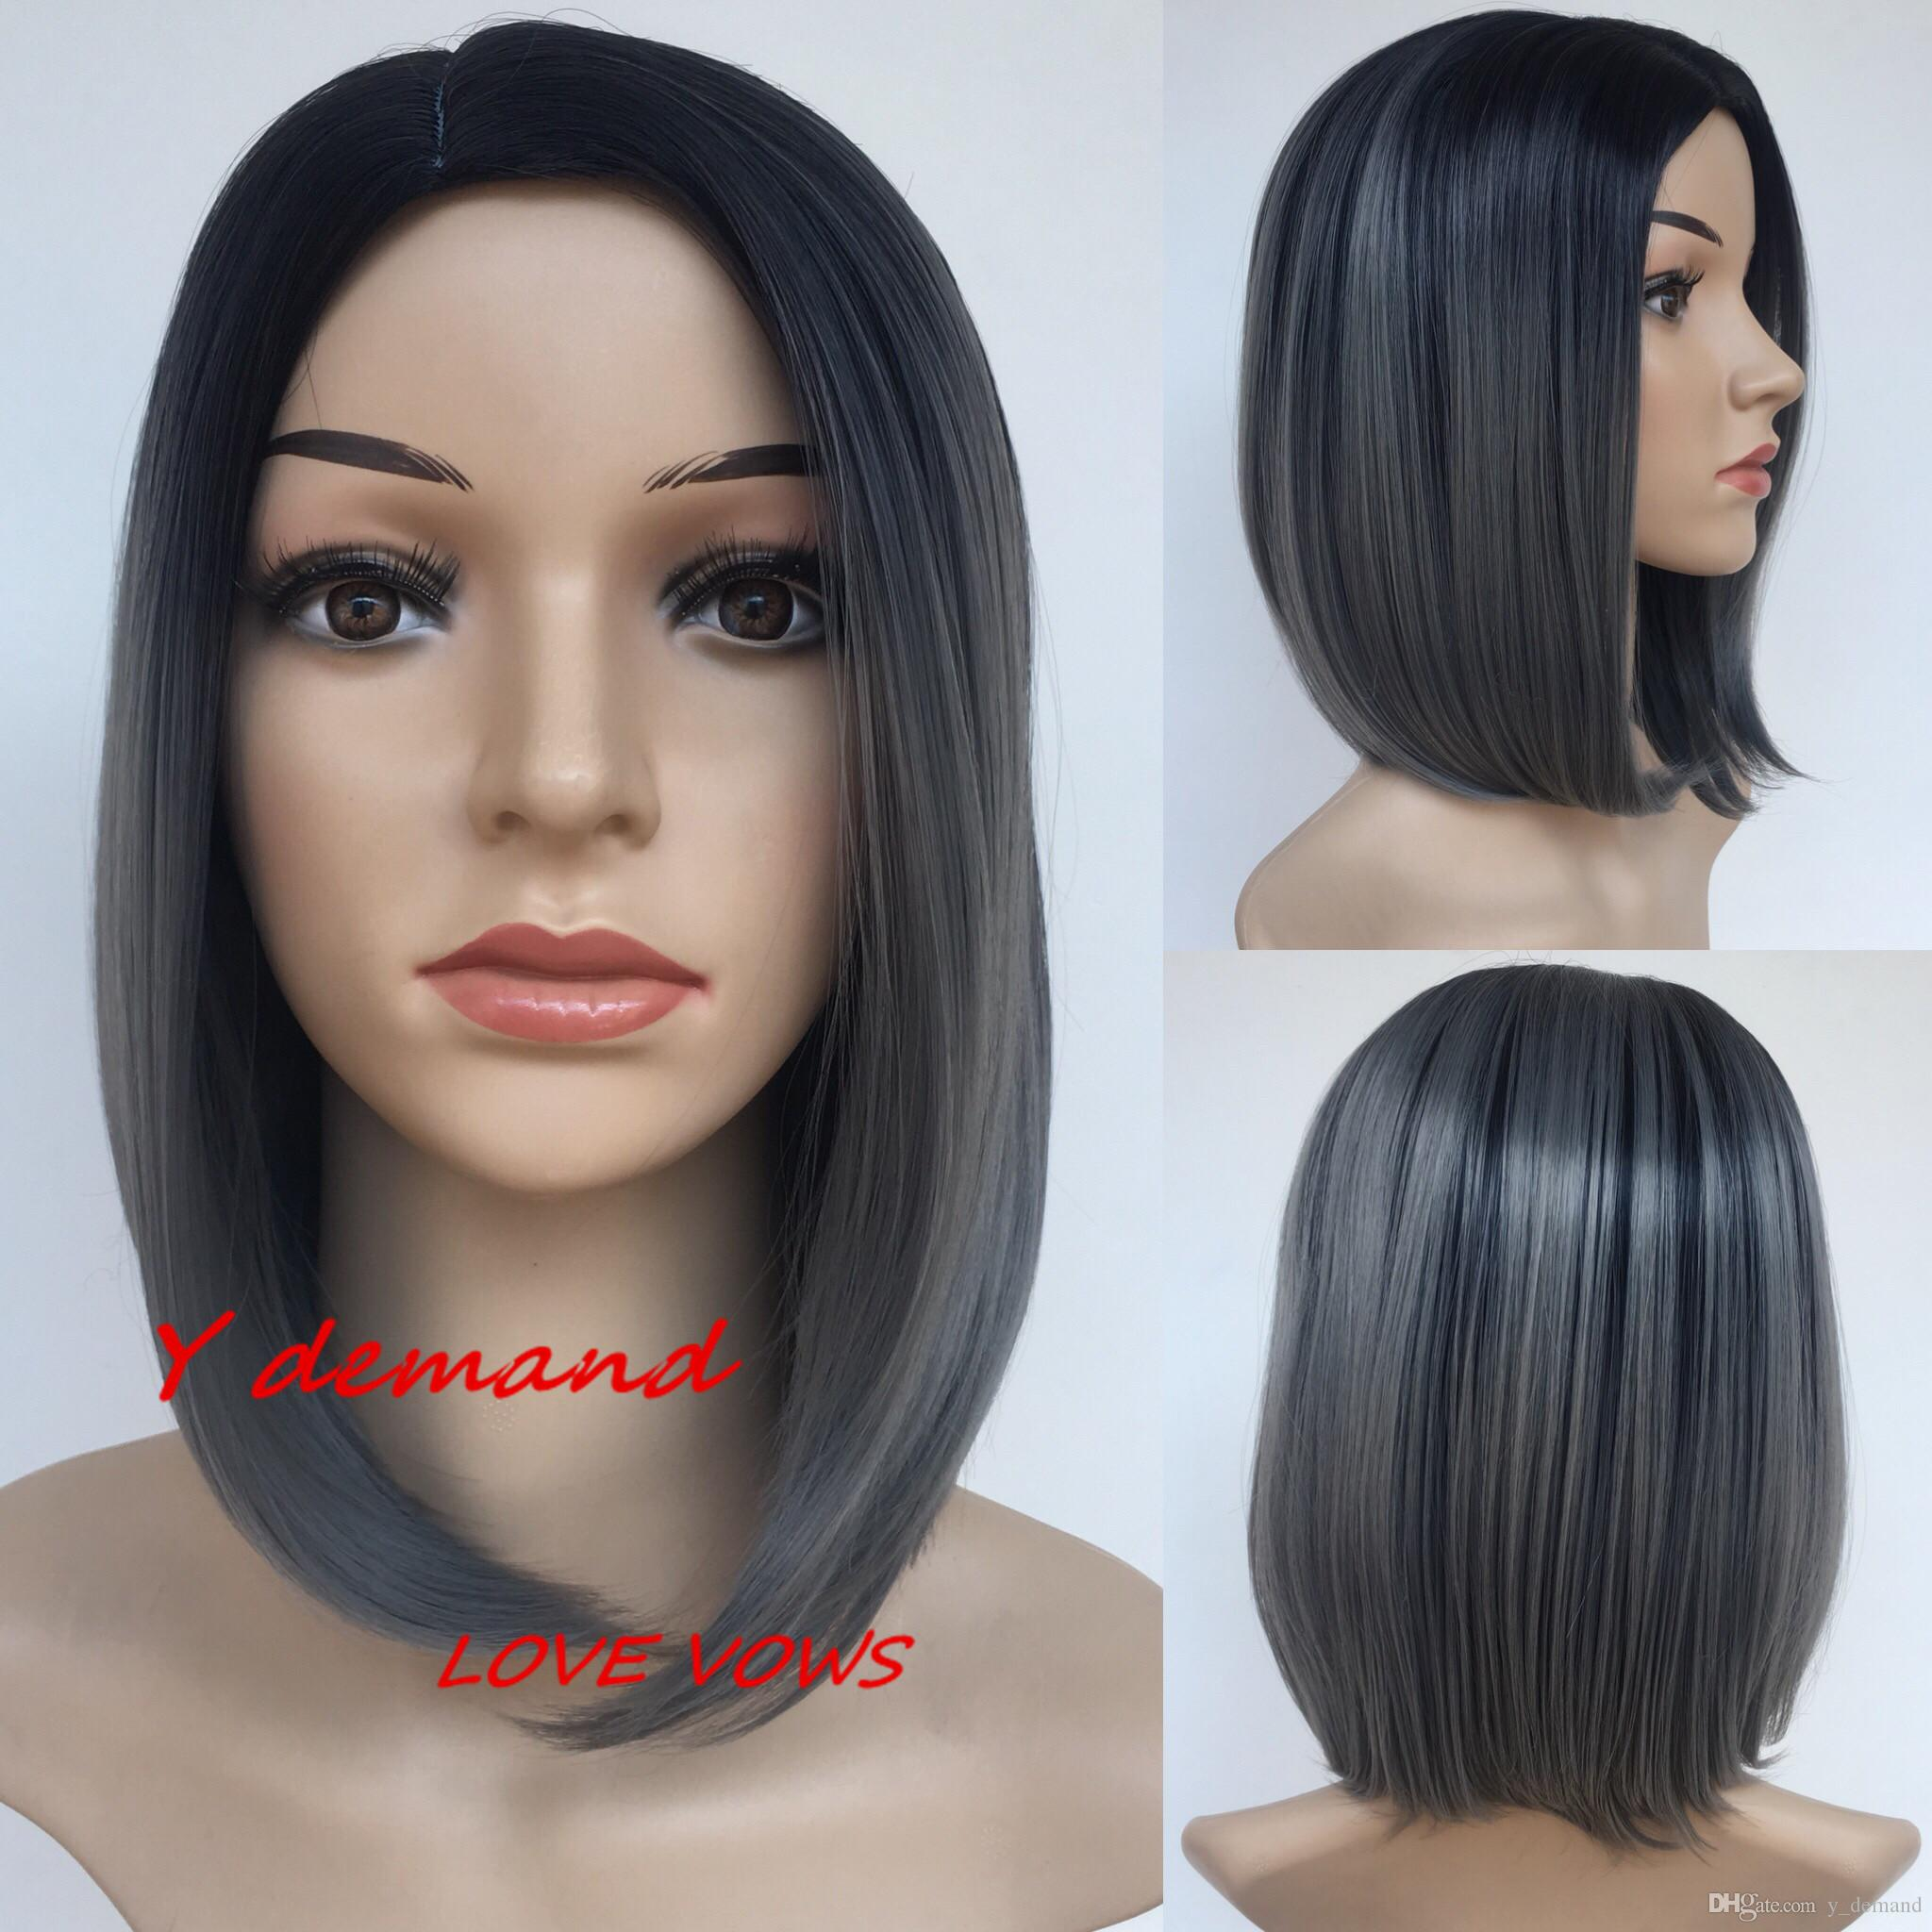 9dae6bbc7d5 12inch Fashion New Straight Short Ombre Grey Wig Simulation Brazilian Human  Hair Full Wig For Black Women Y demand